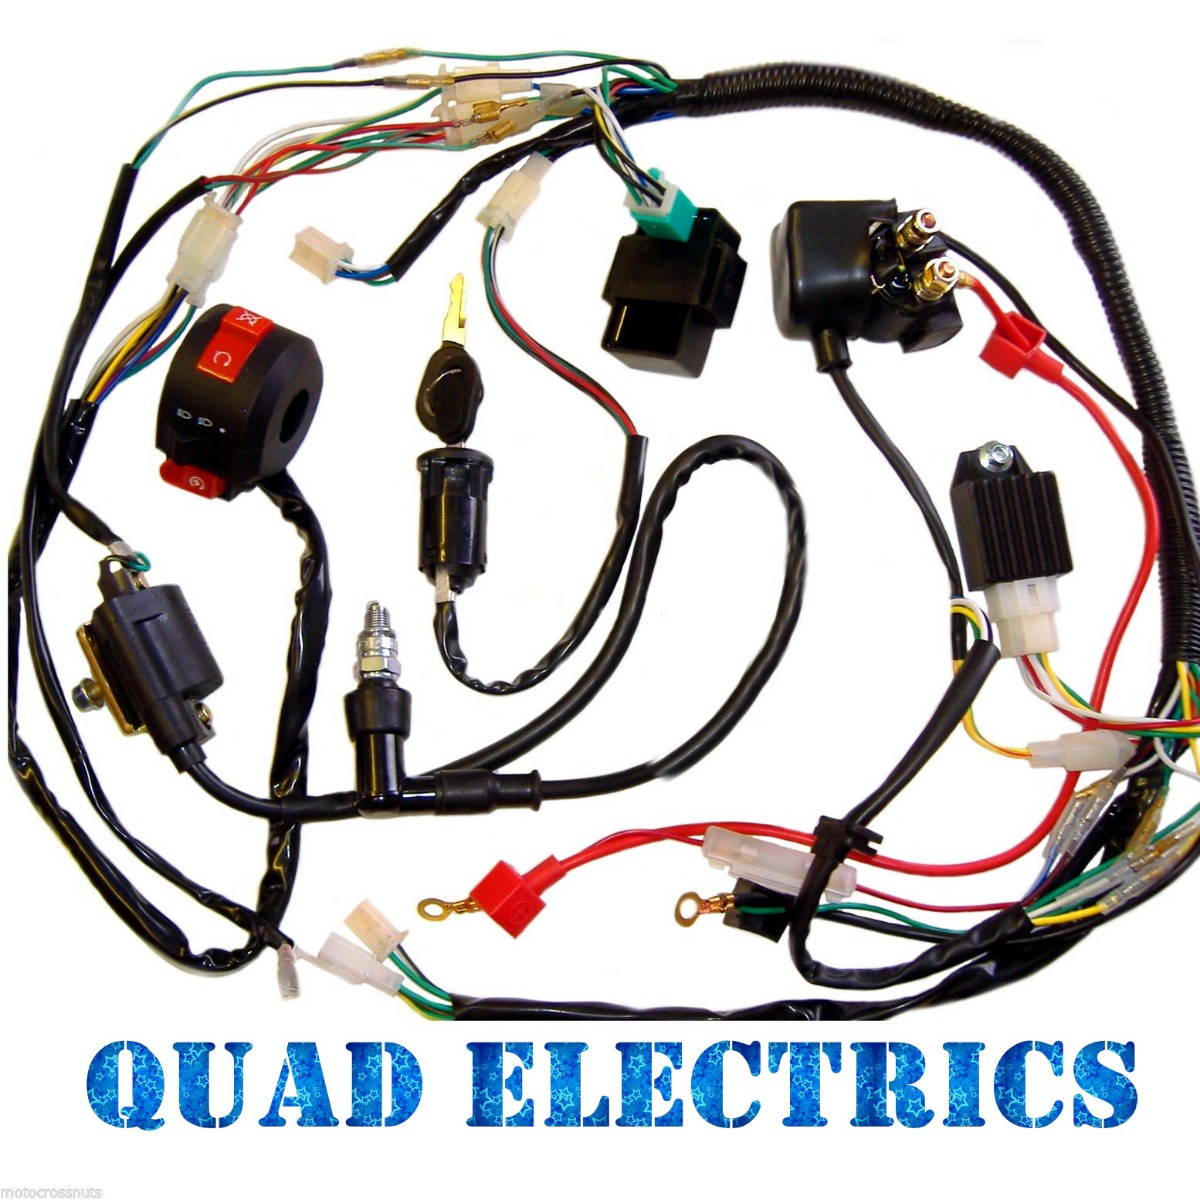 wiring diagram for quad receptacle wiring image wiring diagram quad 240v wiring auto wiring diagram schematic on wiring diagram for quad receptacle